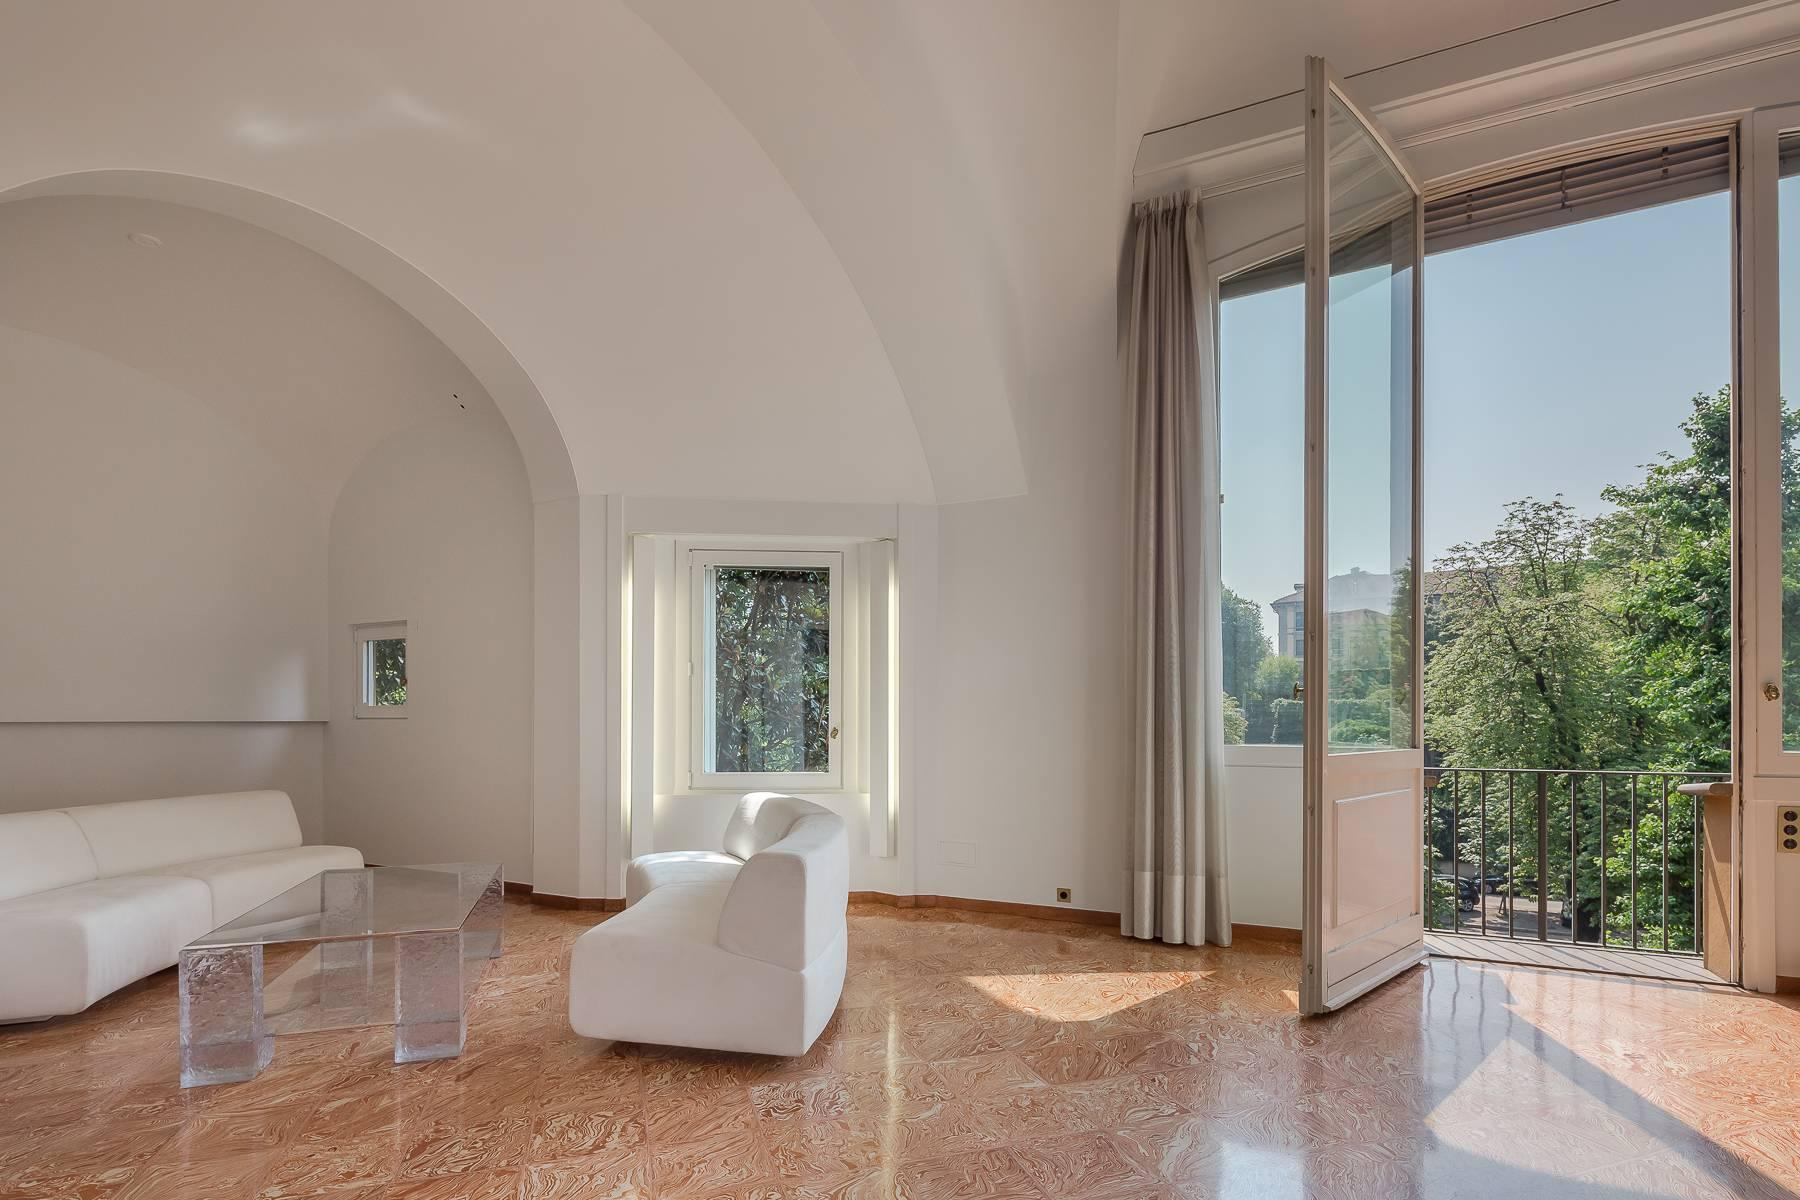 Inviting 482 sqm property with a view of the greenery in the XX Settembre / Tamburini area - 7